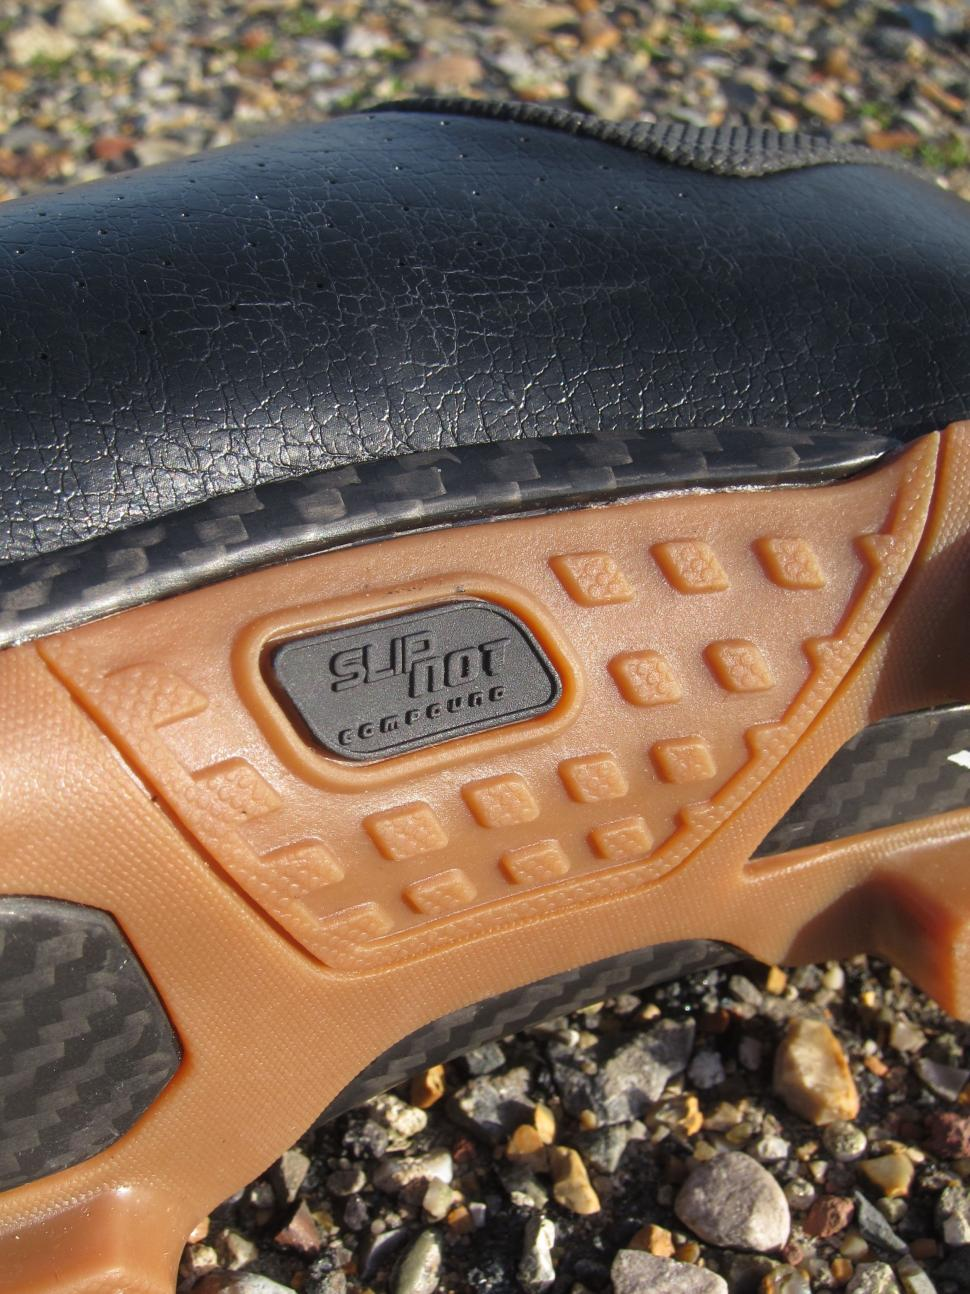 Specialized Recon Mixed Terrain Shoes - Mid Sole Grip.jpg